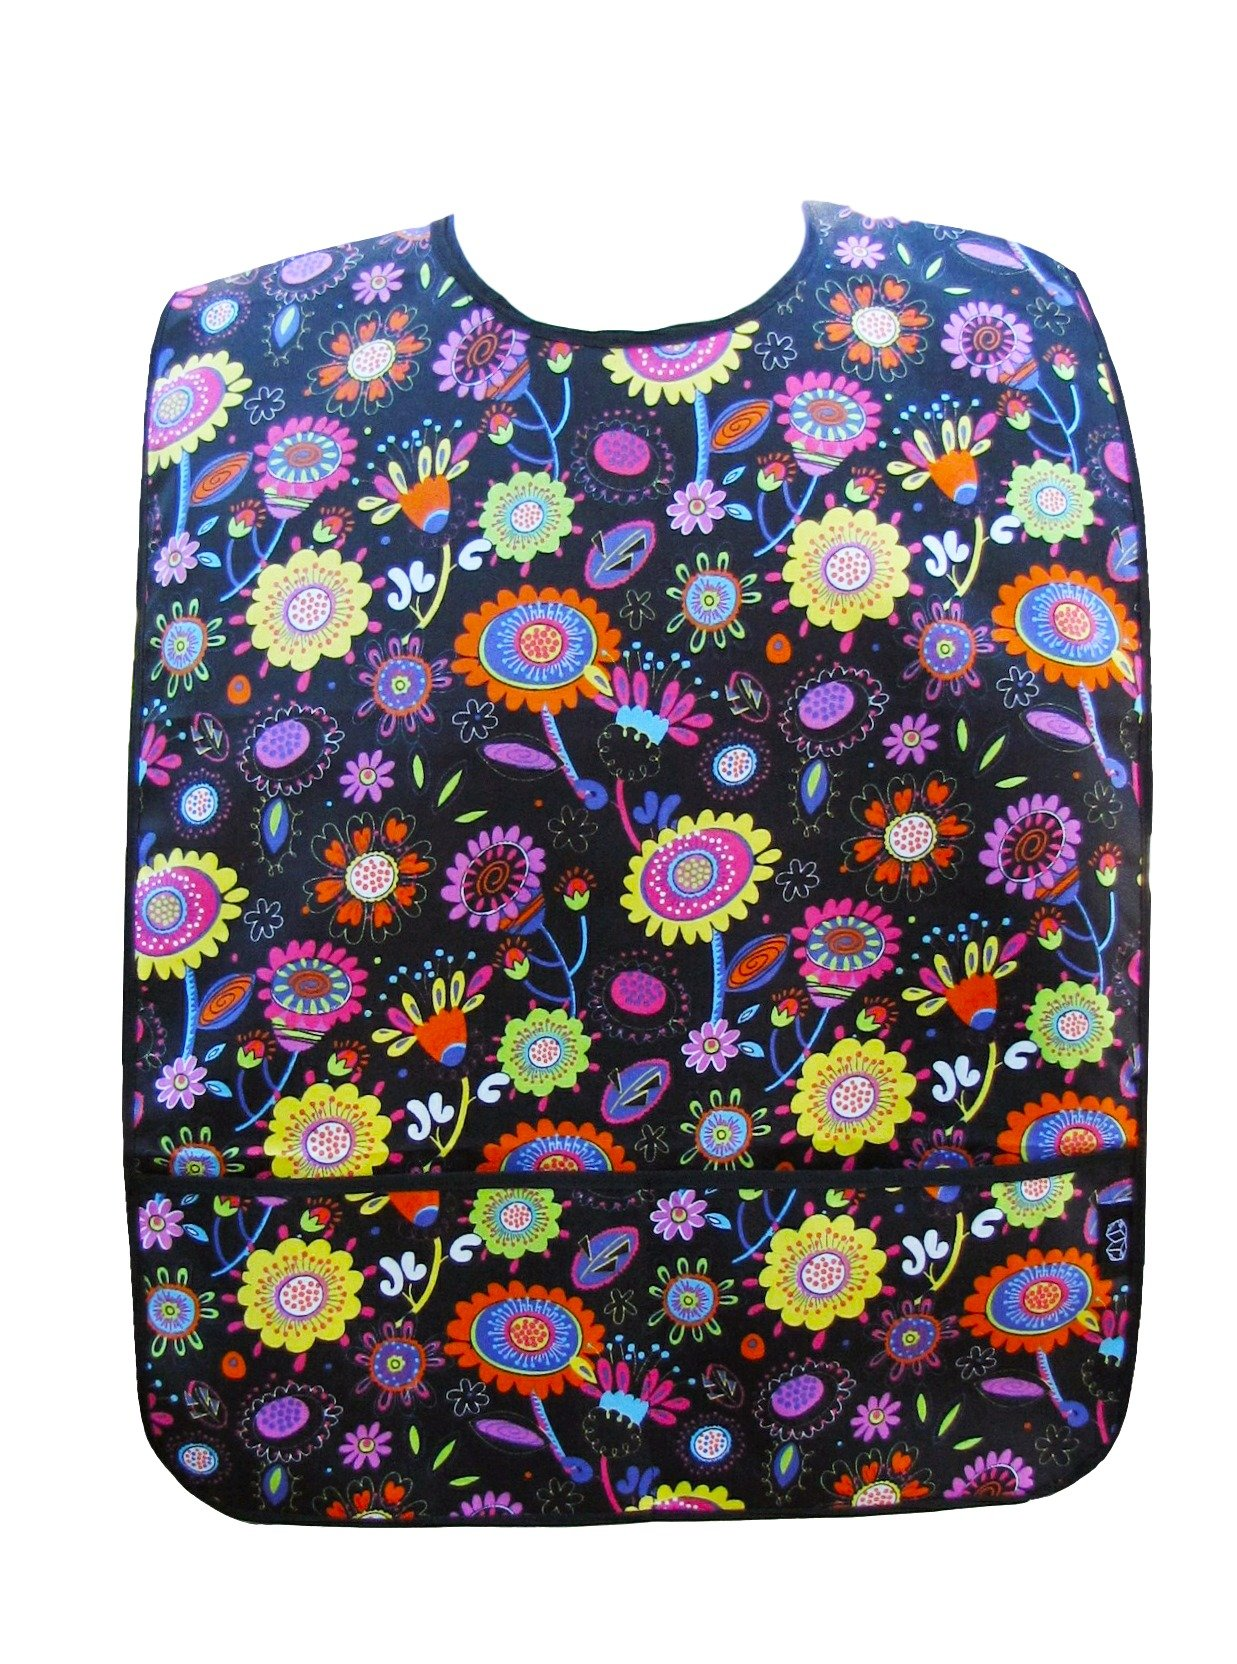 Adult Clothing Protector with Front Pockets (Bright Poppies)